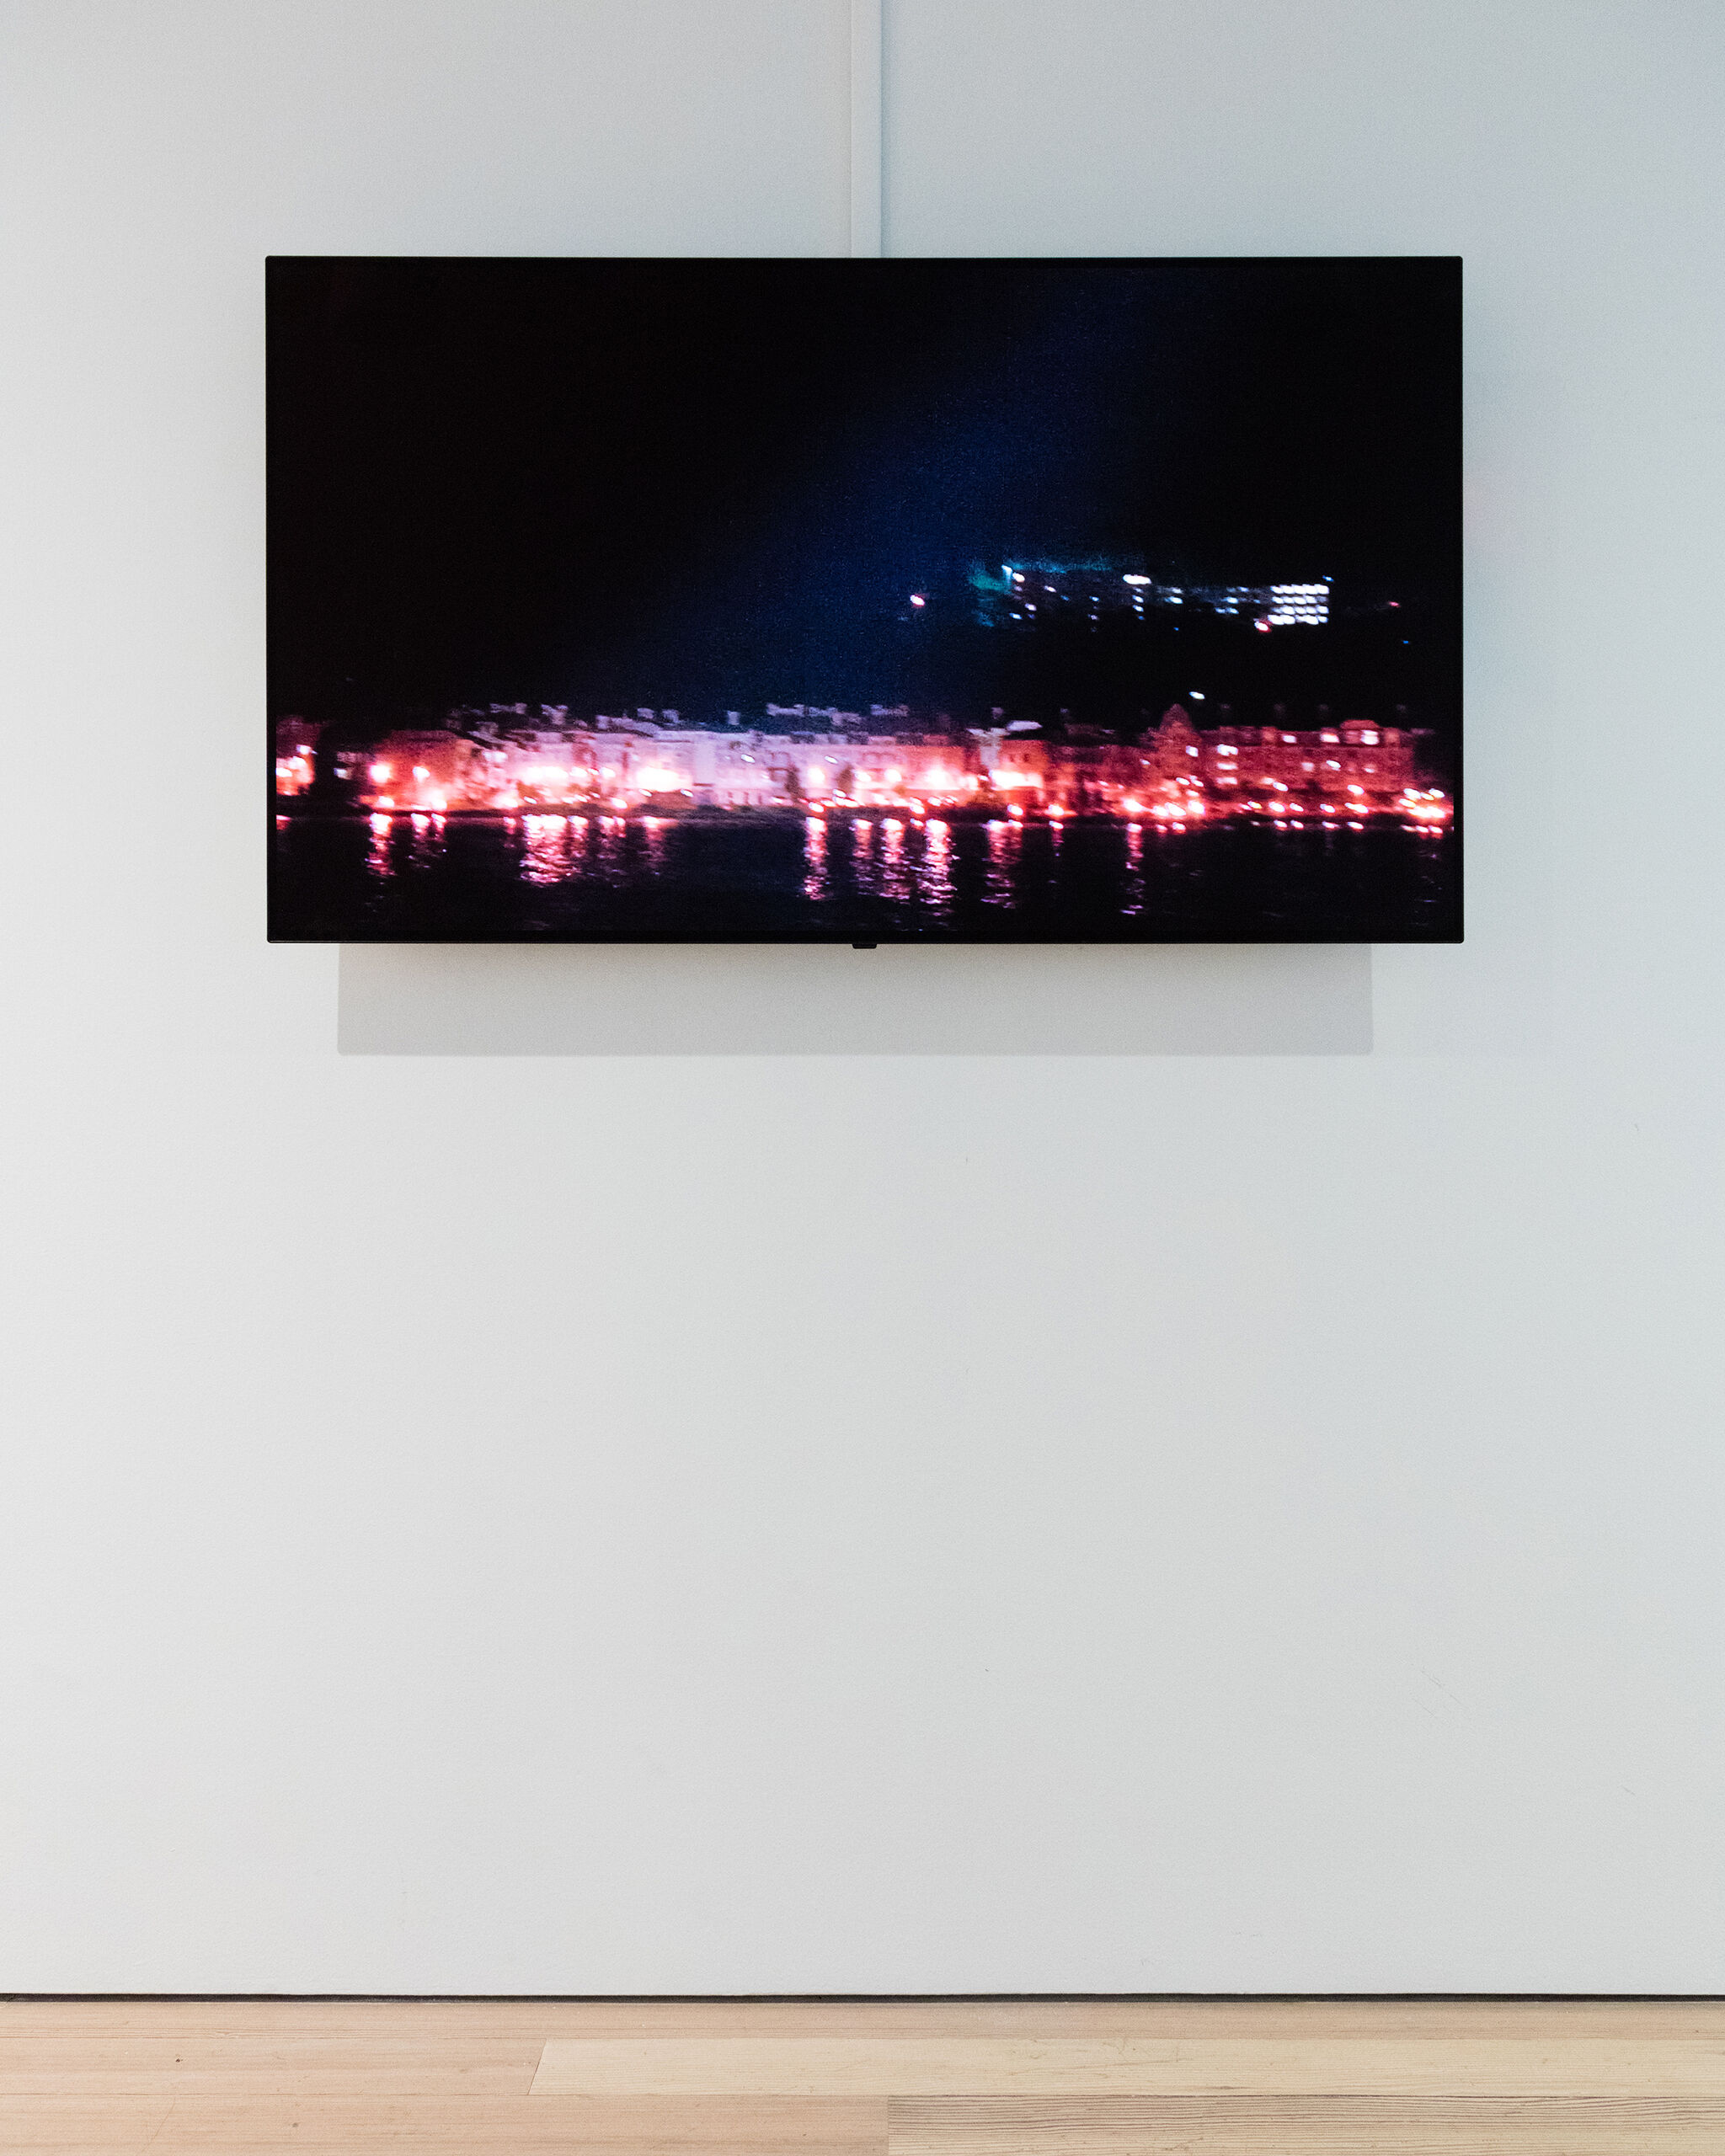 A monitor in a gallery displaying a nighttime red hued waterfront view.